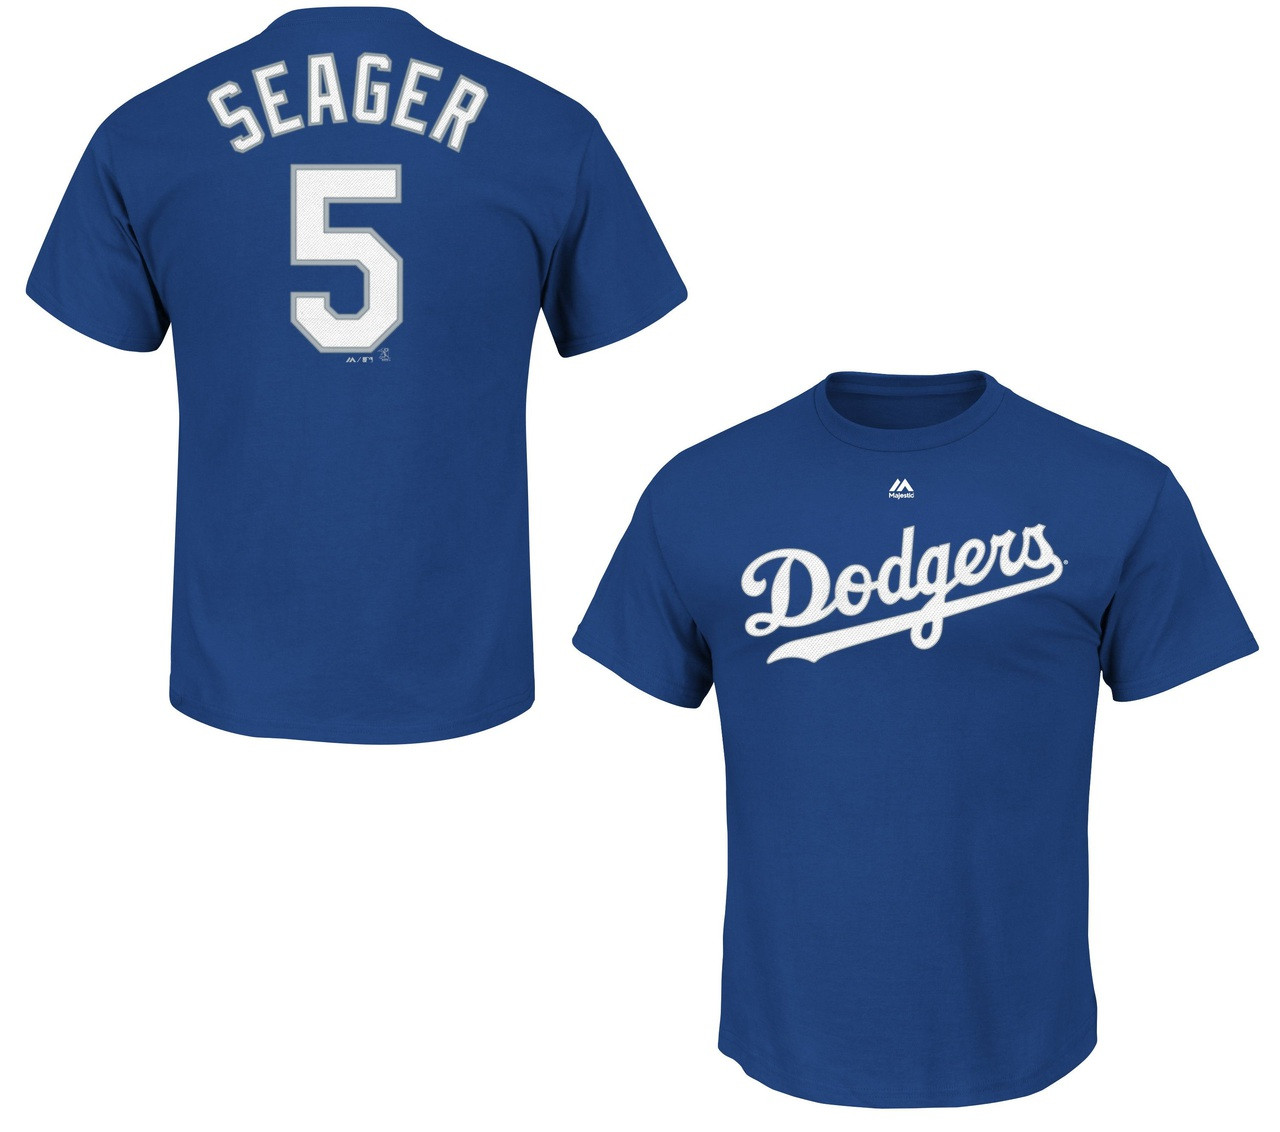 b52d9d683 Corey Seager Los Angeles Dodgers Majestic Official Name and Number MEN S  T-Shirt - Royal. Majestic · Image 1